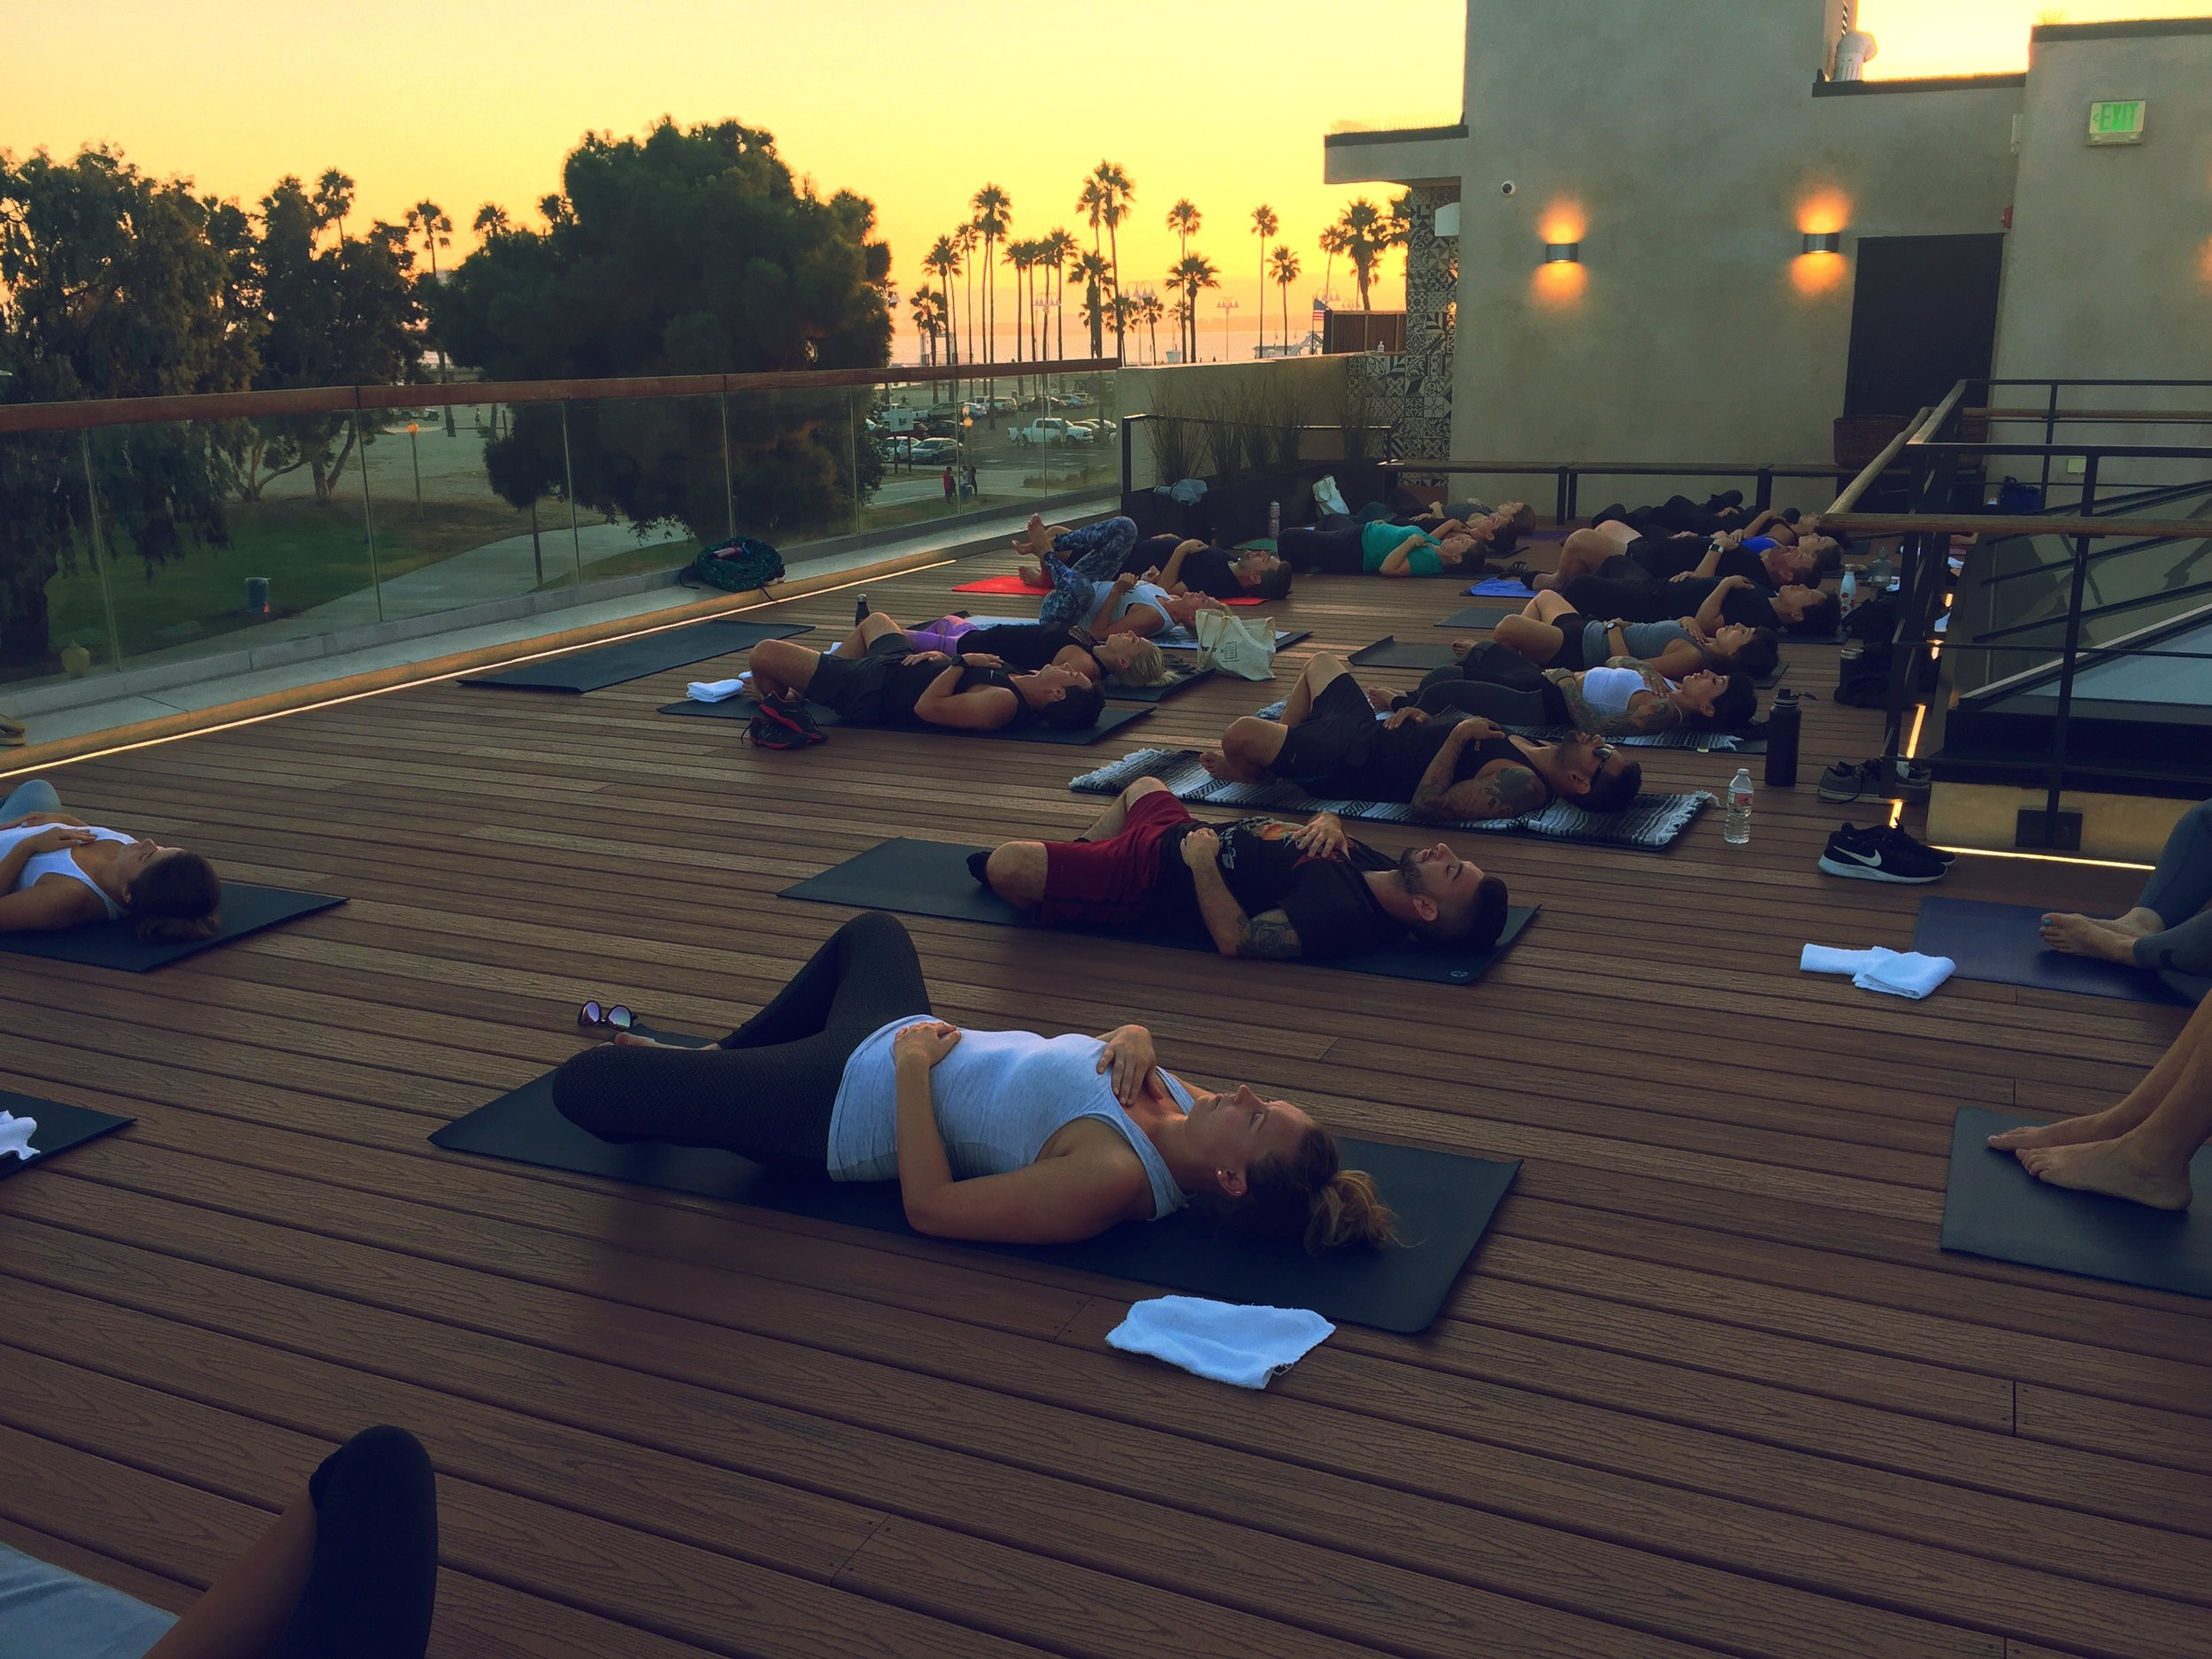 Come take class! - Sunday's at 8:30am at Olympix Fitness, Long Beach, CA